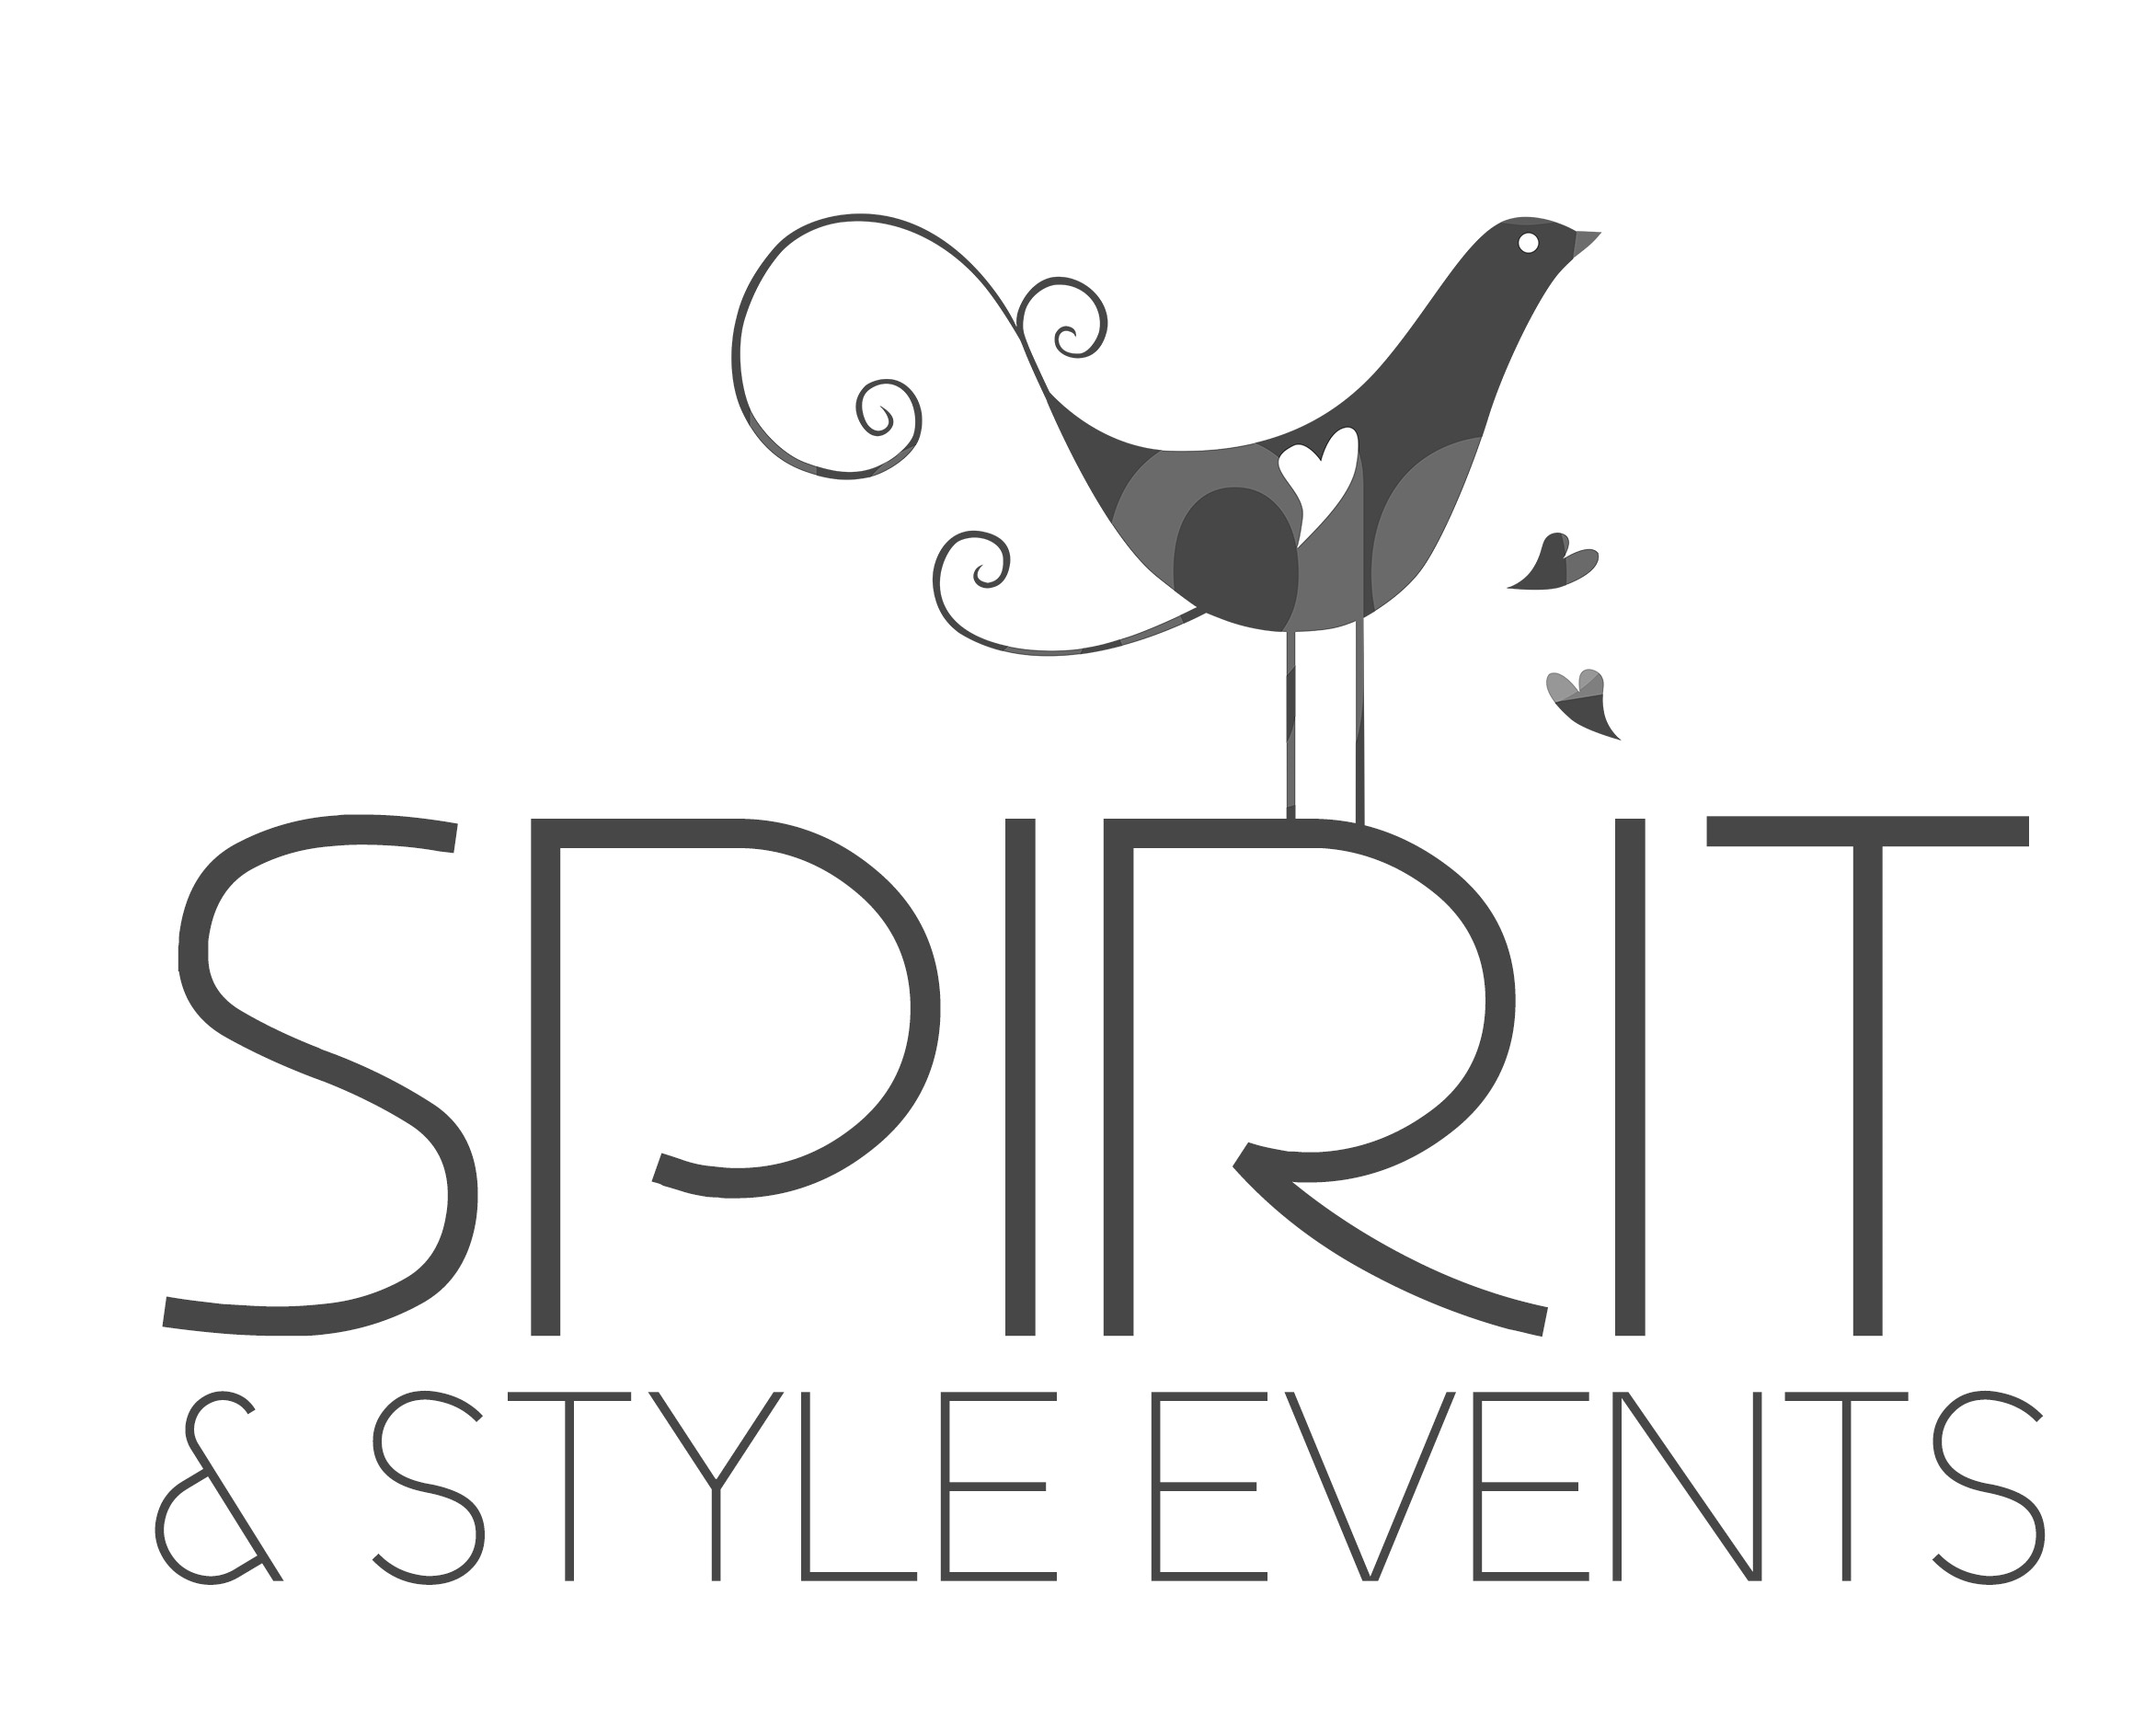 Ru Wood is the owner and CEO of Spirit & Style Events, Wisconsin's premiere Event Planning Agency based in Madison Wisconsin. Seen as a pioneer in event planning, she is an ingenious resource for creative solutions to corporate and personal event planning.   Spirit & Style Events is an event planning firm that believes in the power of a unique and positive event. It is through creative event planning that goals are met and clients are satisfied with their returns.